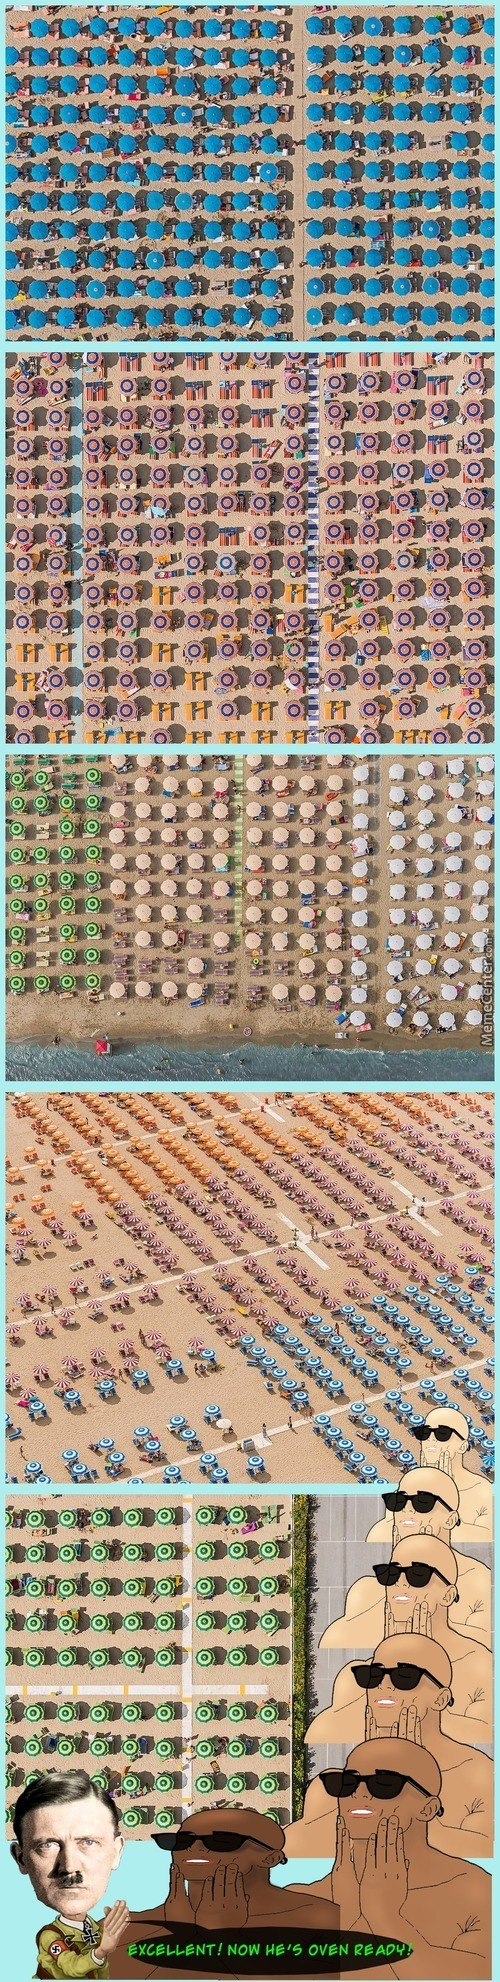 Le Tanning Concentration Camp